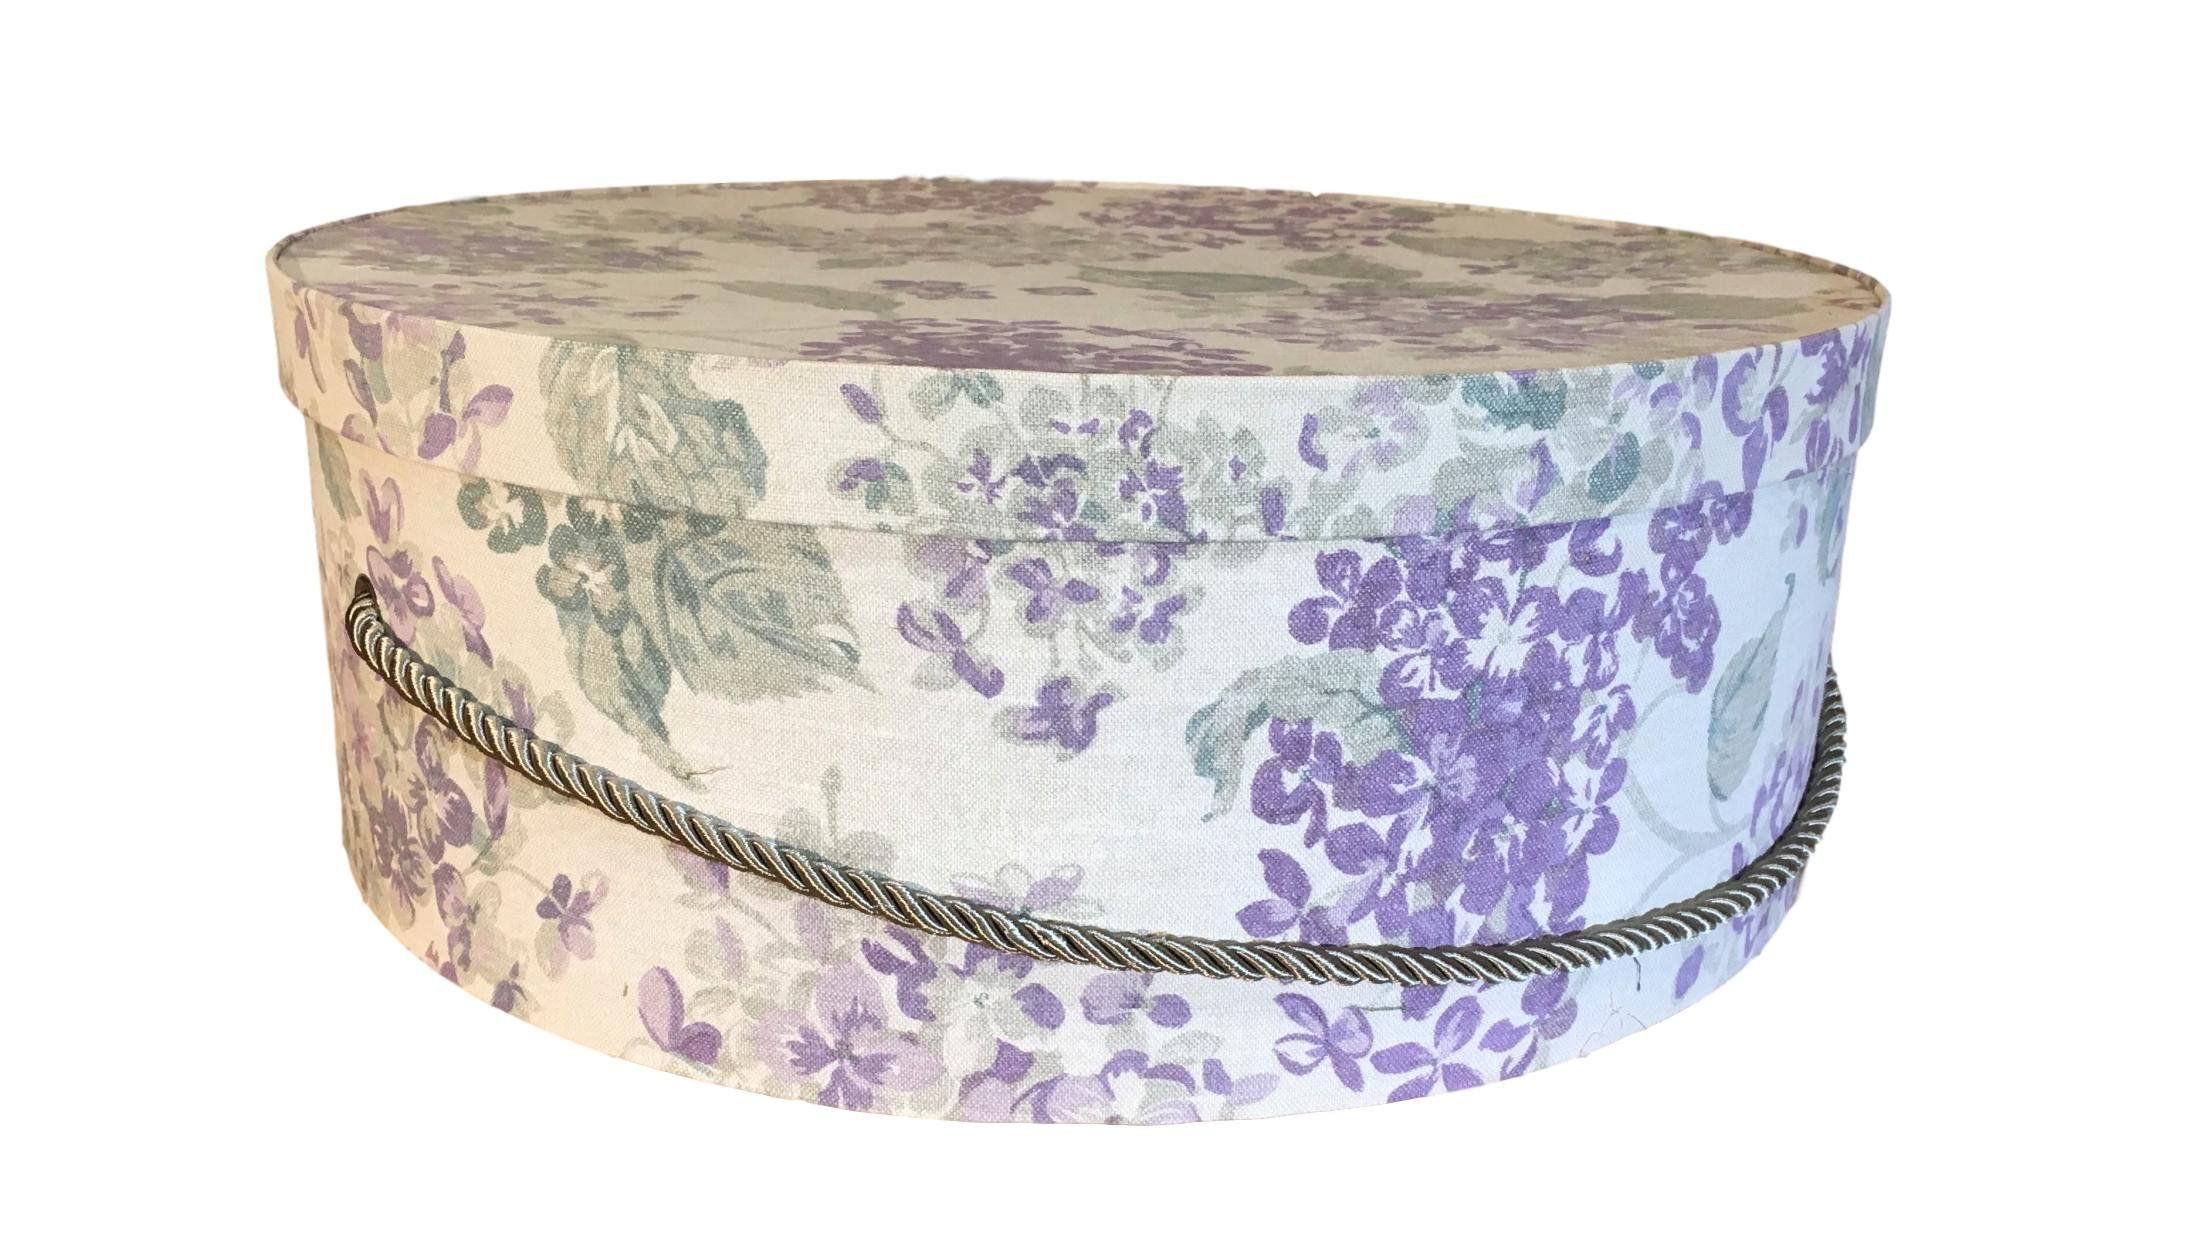 Extra Large Hat Box In Lilac And Tan Floral Decorative Fabric Covered Hat Boxes Round Storage Box Keepsake Box With Lid N Fabric Decor Large Hats Hat Boxes